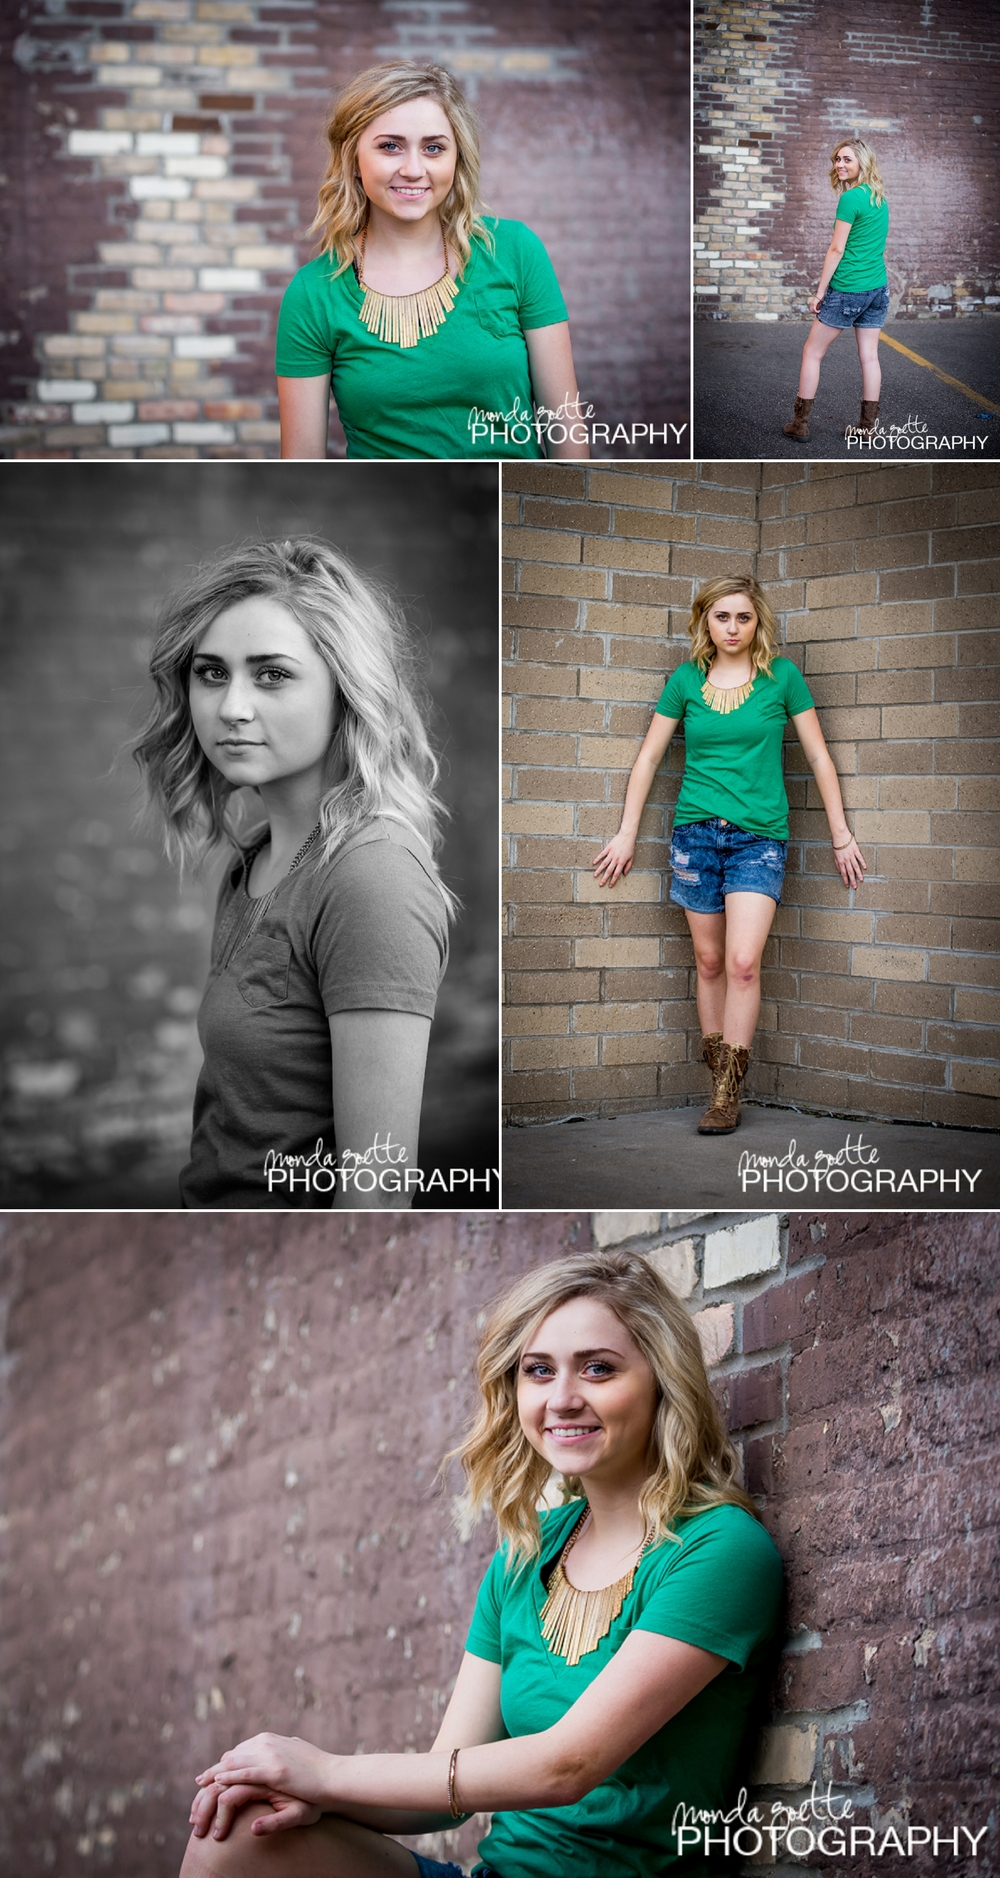 Jordan-New Prague-Senior-Photos-Maddie